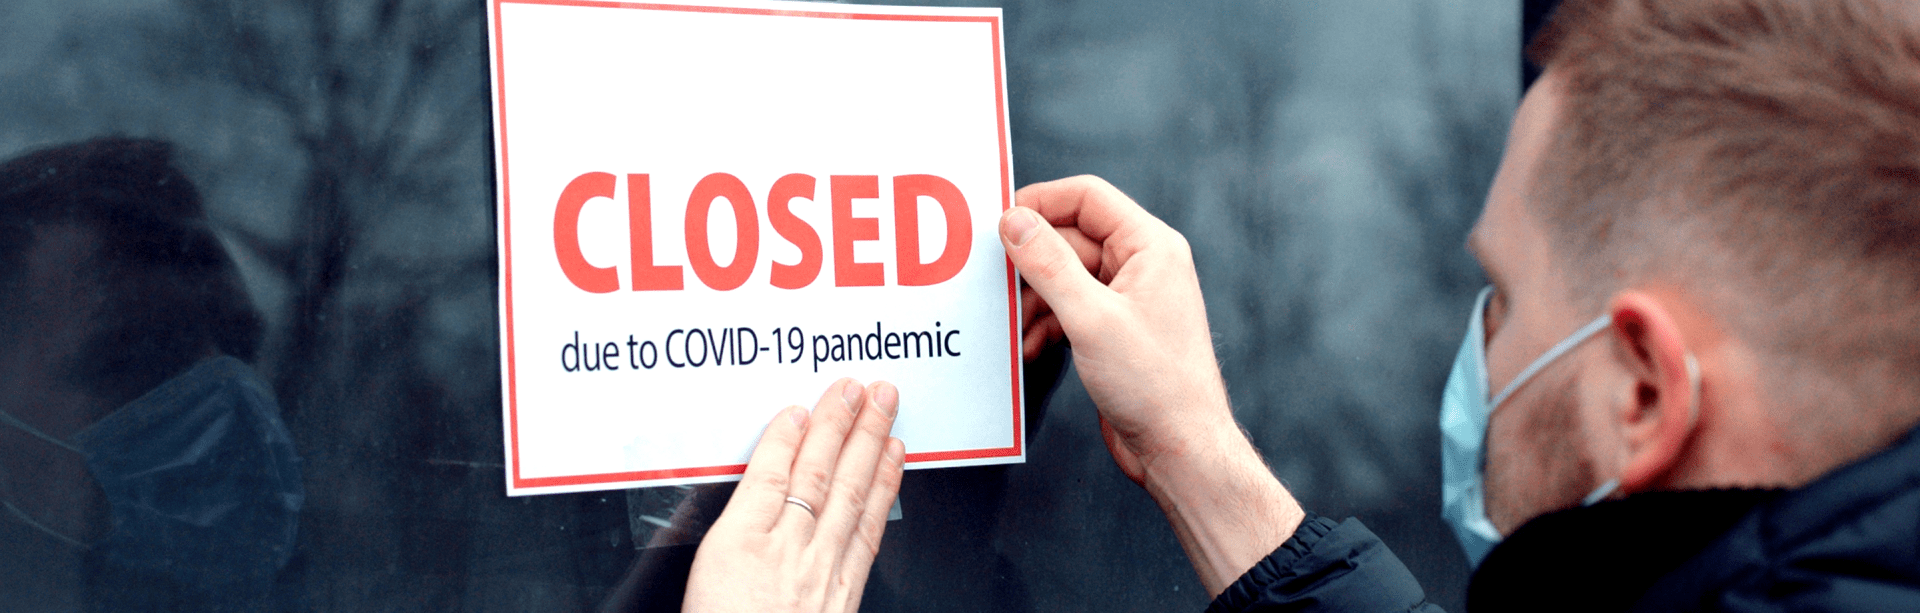 COVID-closed-banner-w1920.png